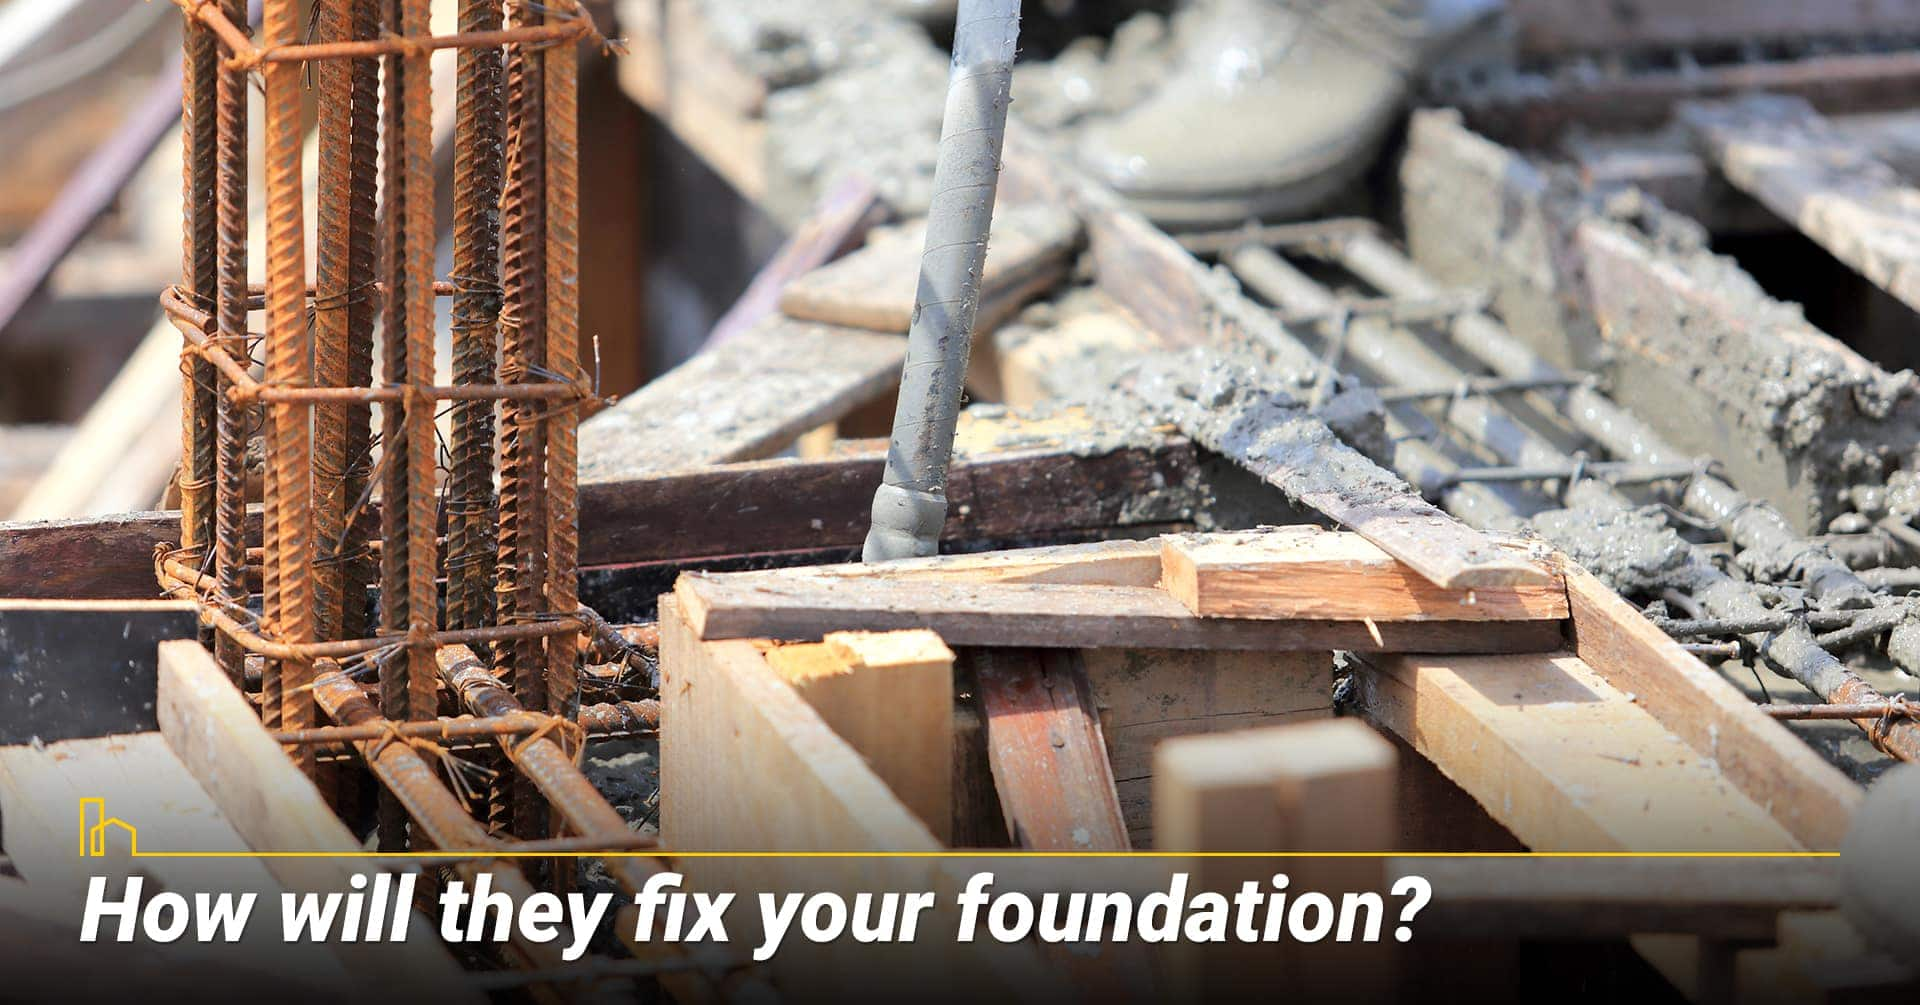 How will they fix your foundation? steps to fix foundation